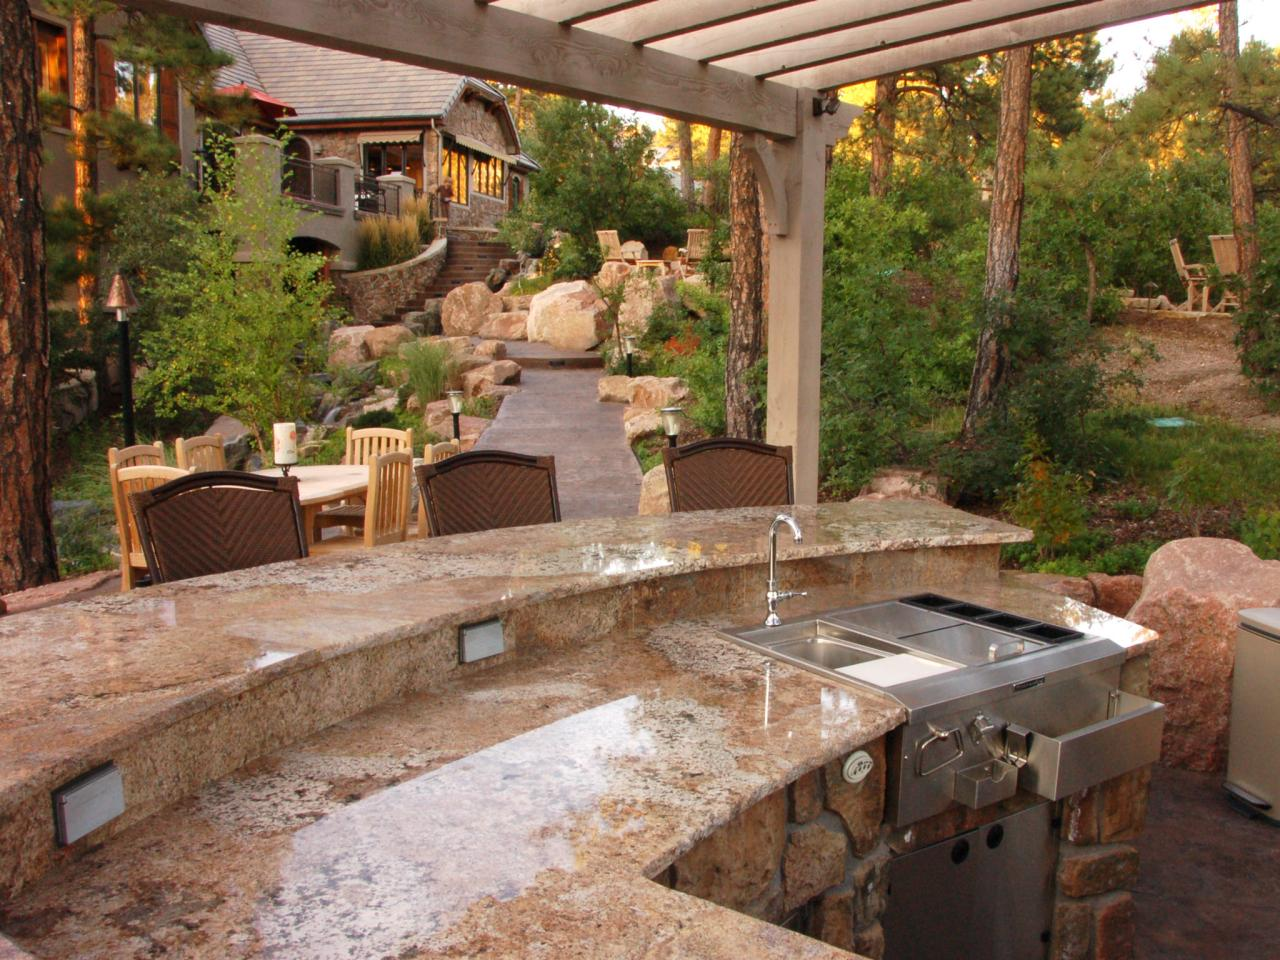 Outdoor Kitchen Designs Magnificent Outdoor Kitchen Design Ideas Pictures Tips & Expert Advice  Hgtv Decorating Design